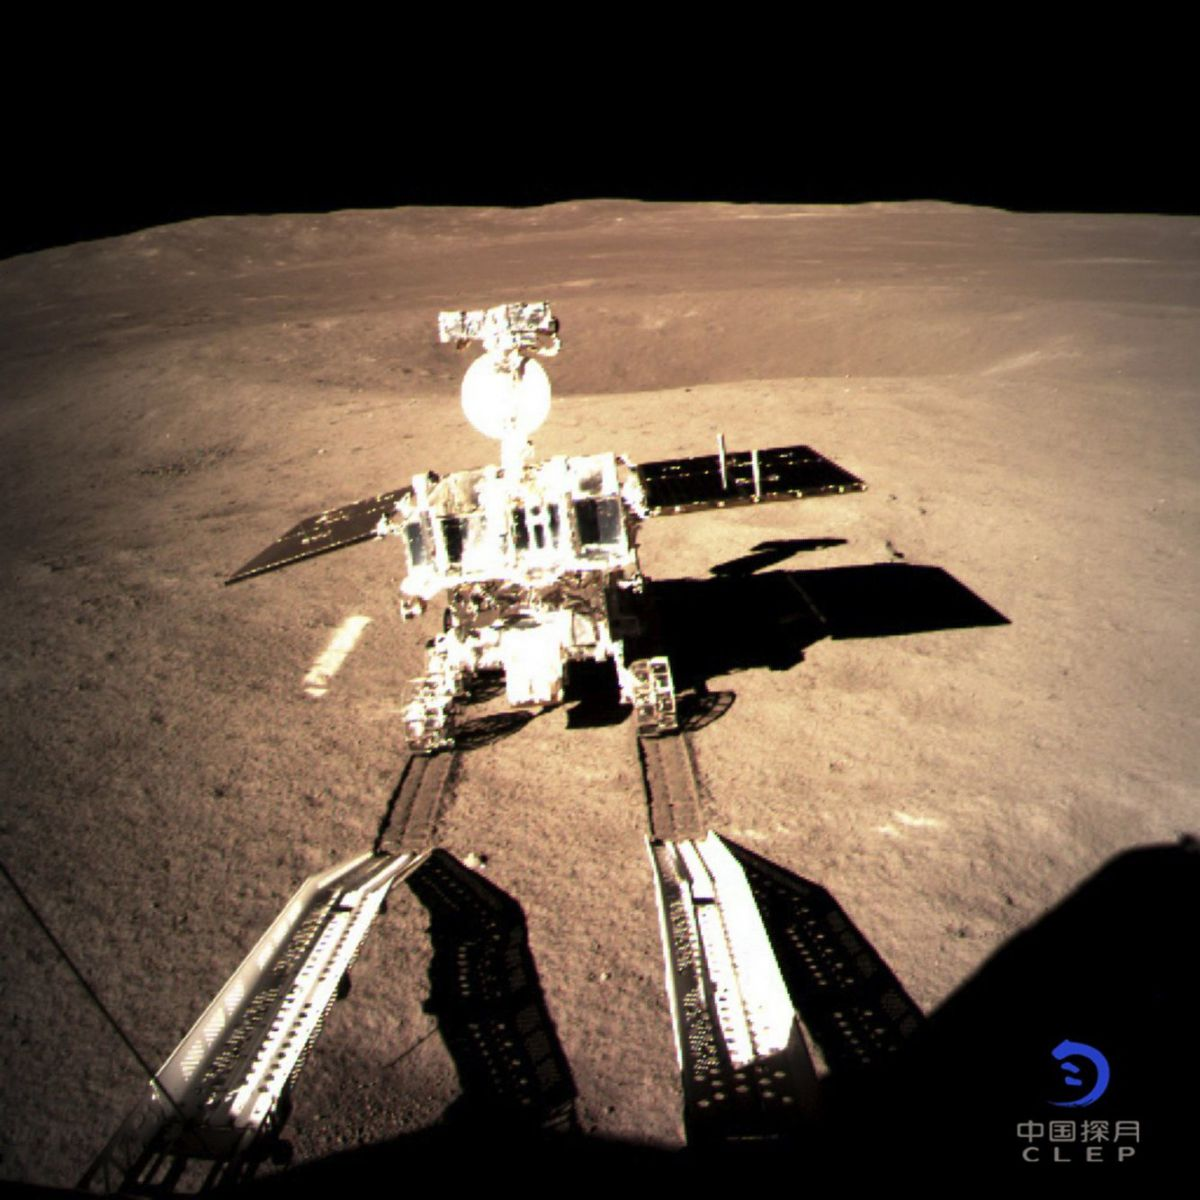 China shares first Chang'e-4 Lunar far side images